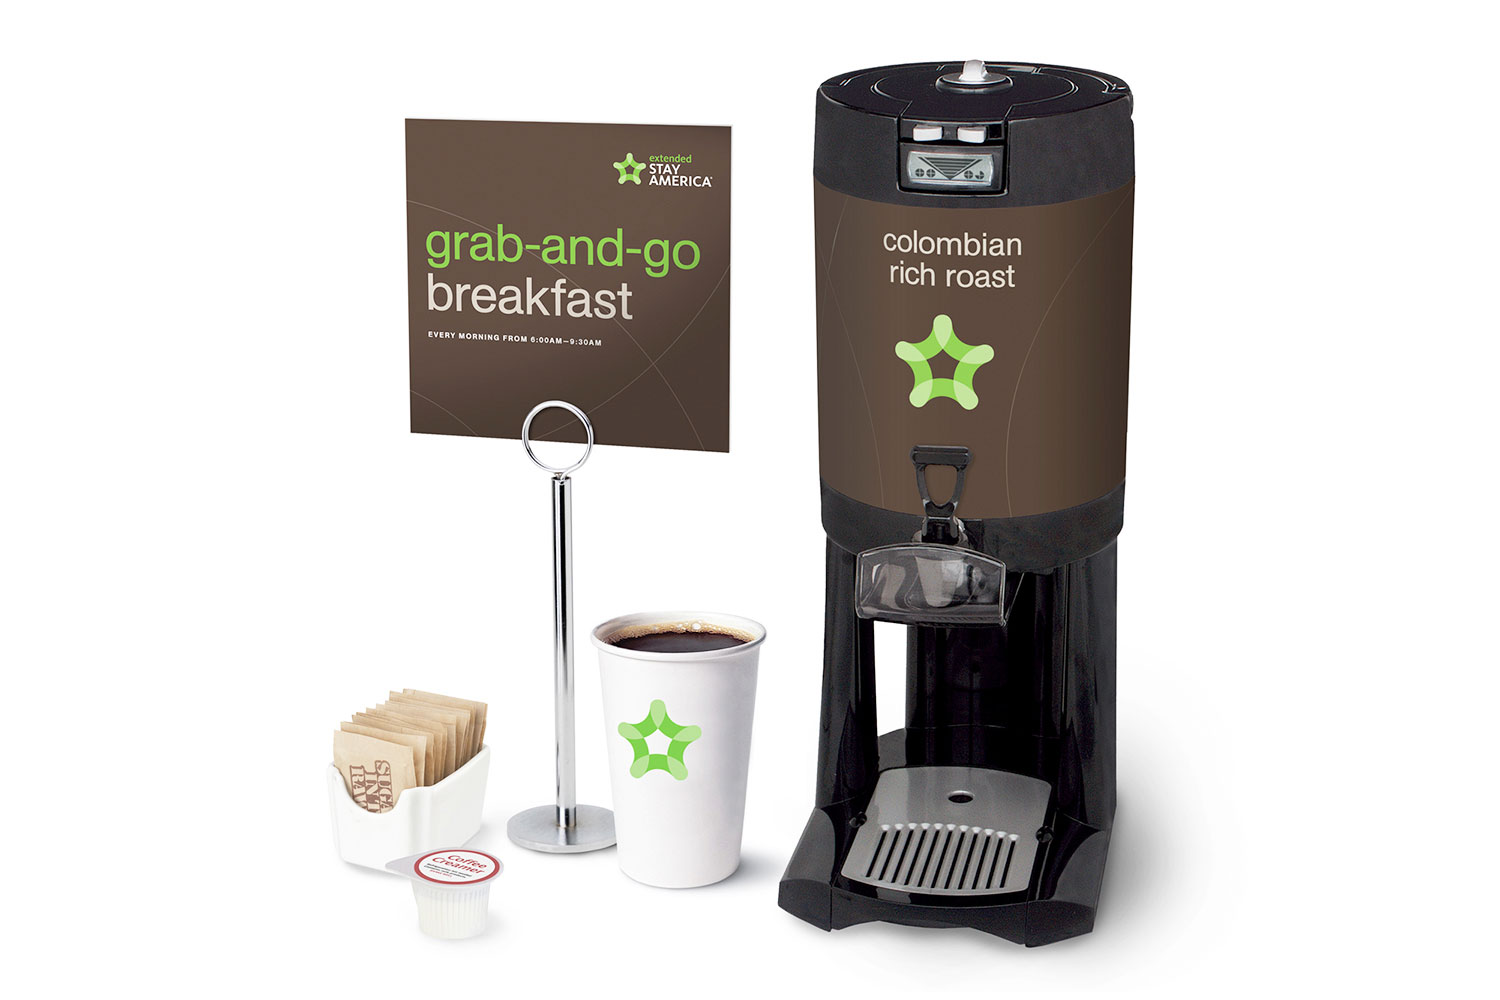 Extended Stay America grab-and-go breakfast and coffee station